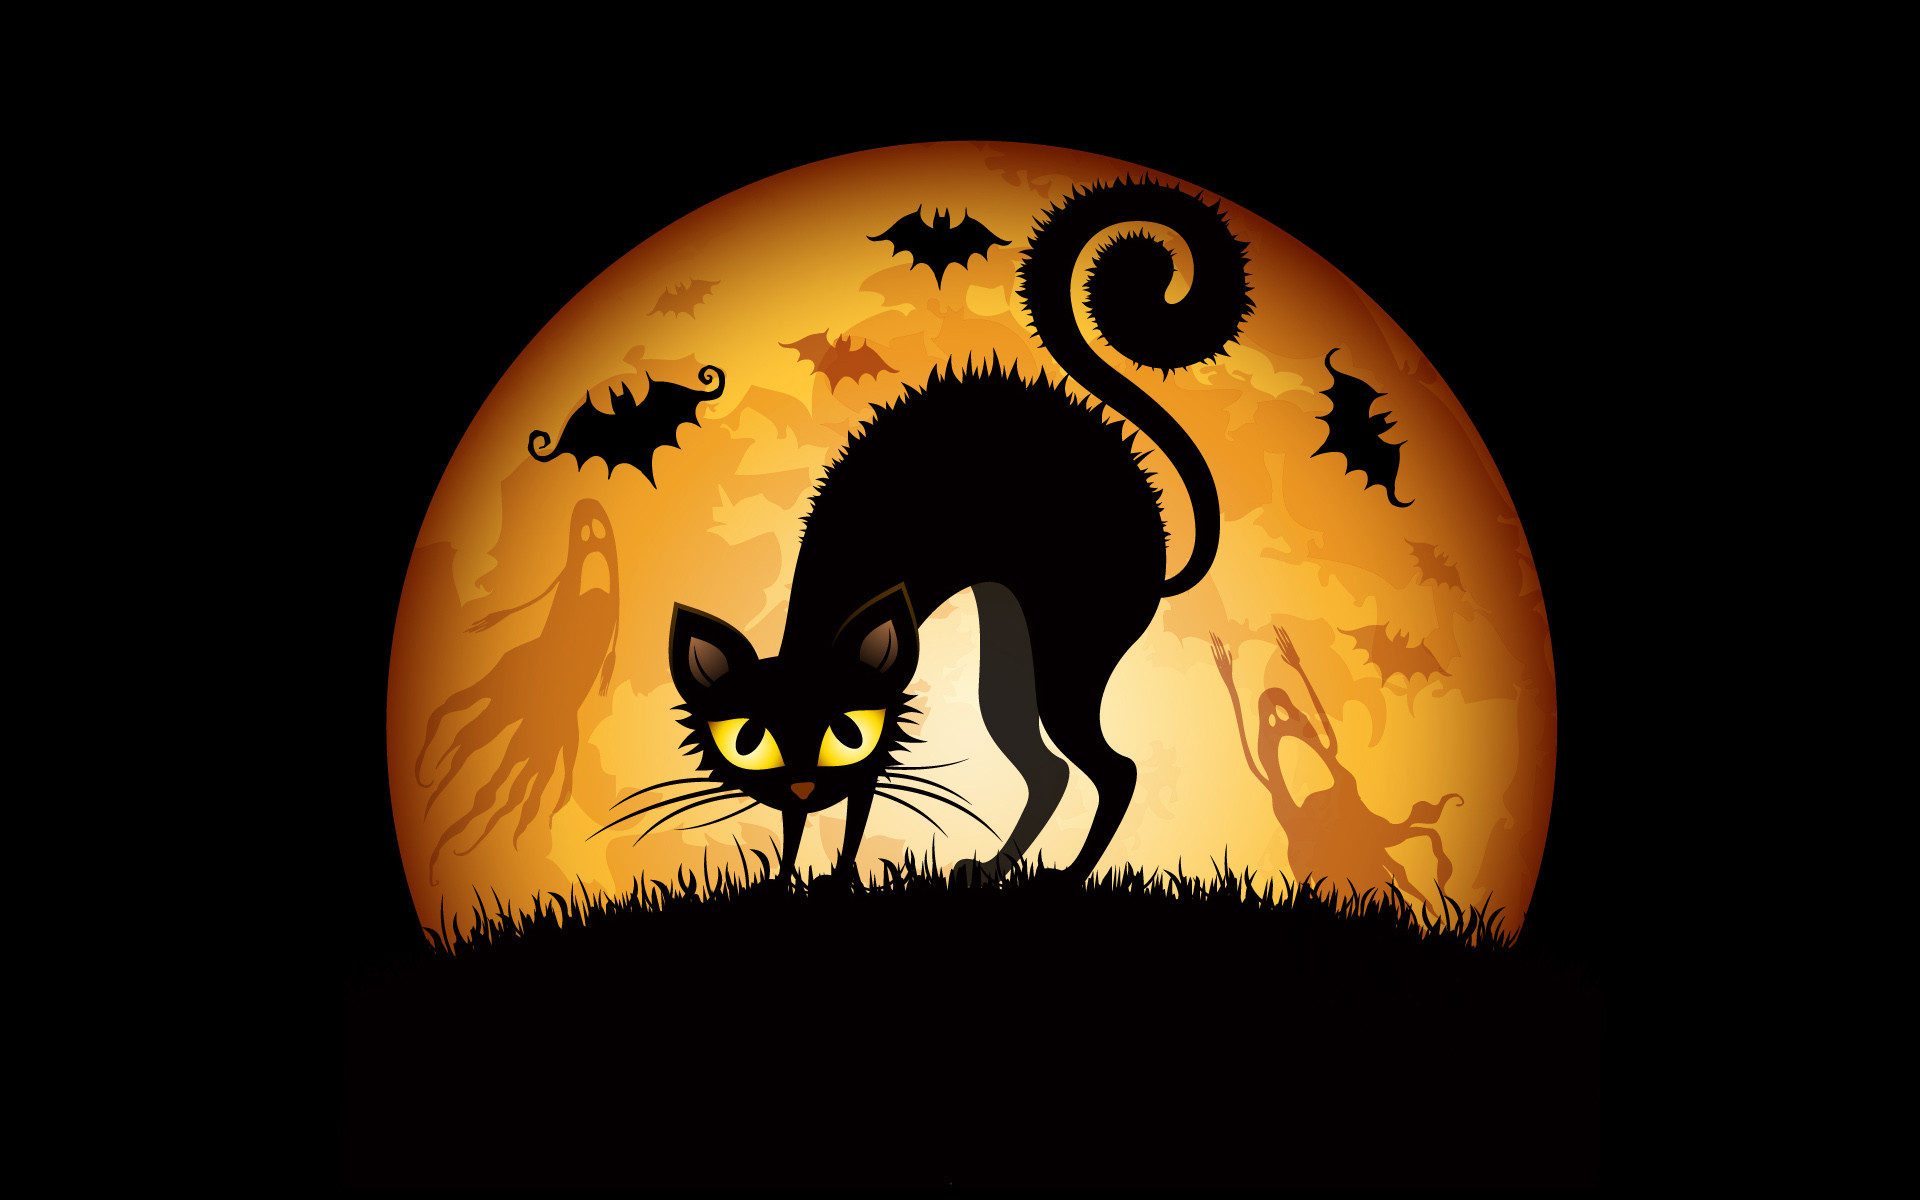 Beautiful Wallpaper Halloween Smartphone - 976986-hello-kitty-halloween-wallpaper-1920x1200-smartphone  Image_882586.jpg